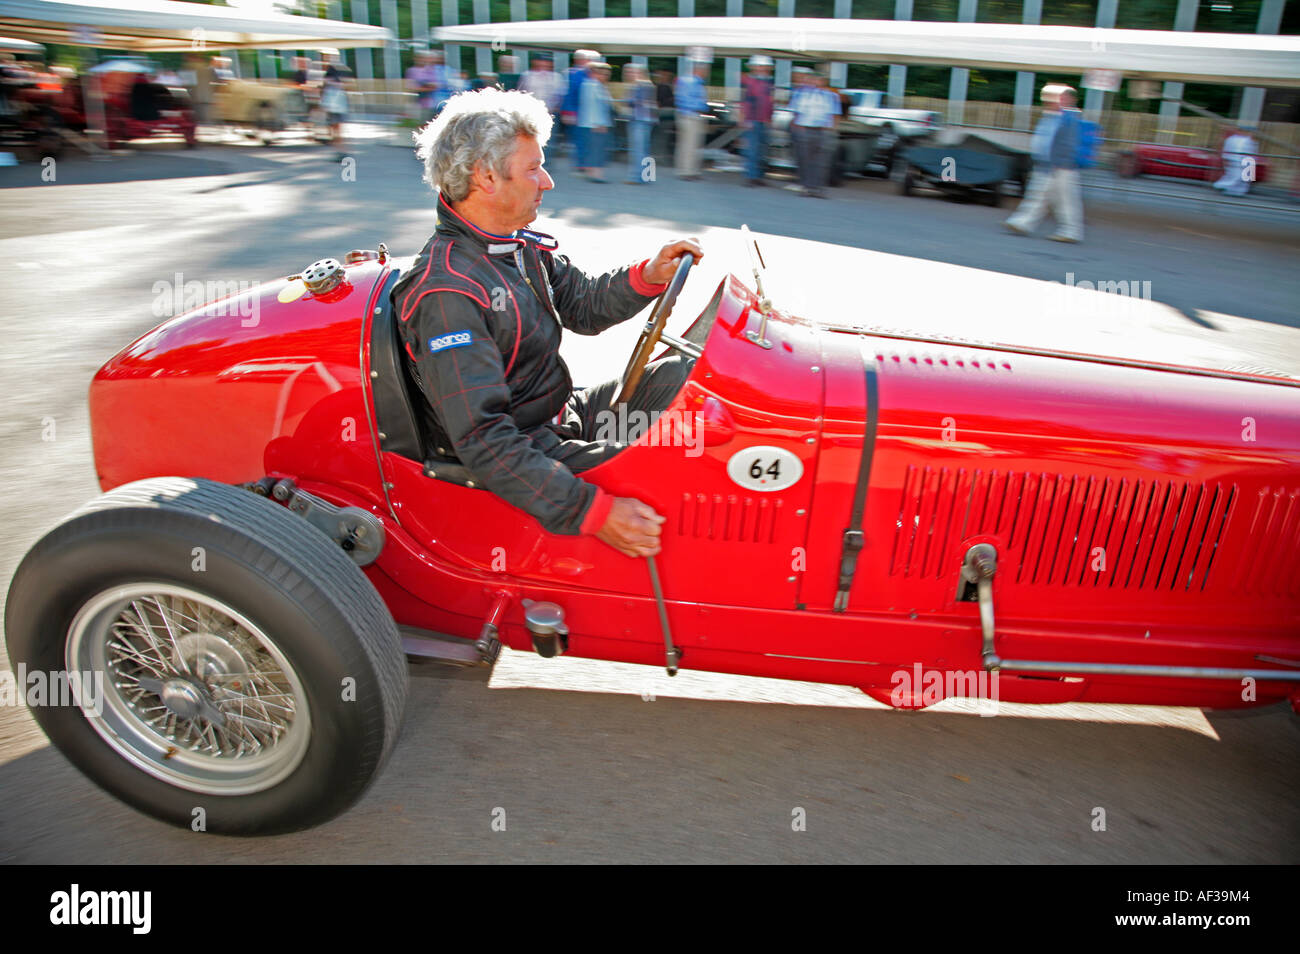 1933 Maserati 8CM leaves the paddock at the Goodwood Festival of Speed, Sussex, England. - Stock Image